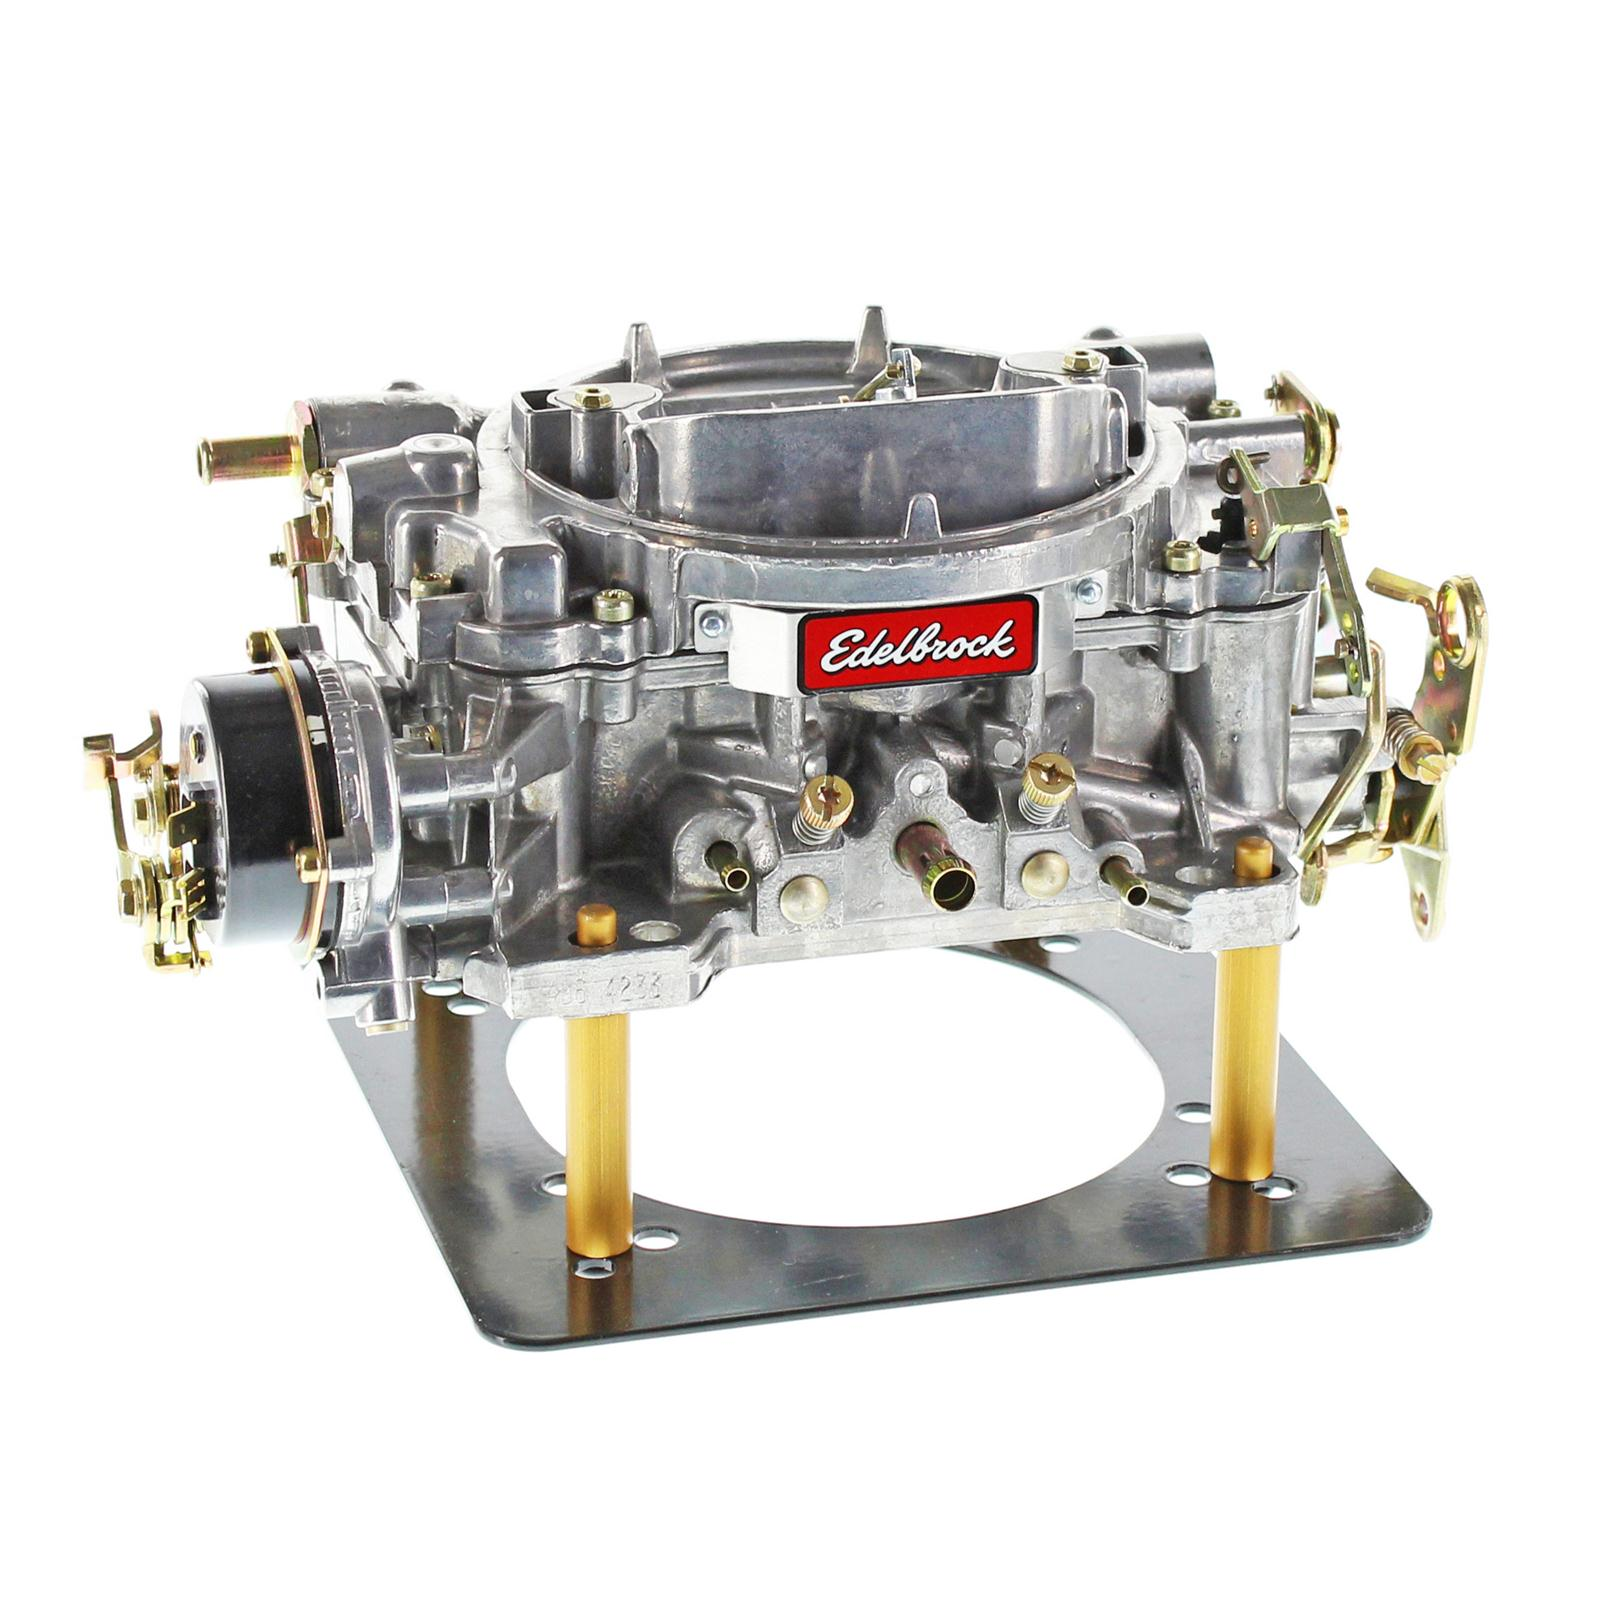 Edelbrock Performer Carburetors 1406 - Free Shipping on Orders Over $99 at  Summit Racing